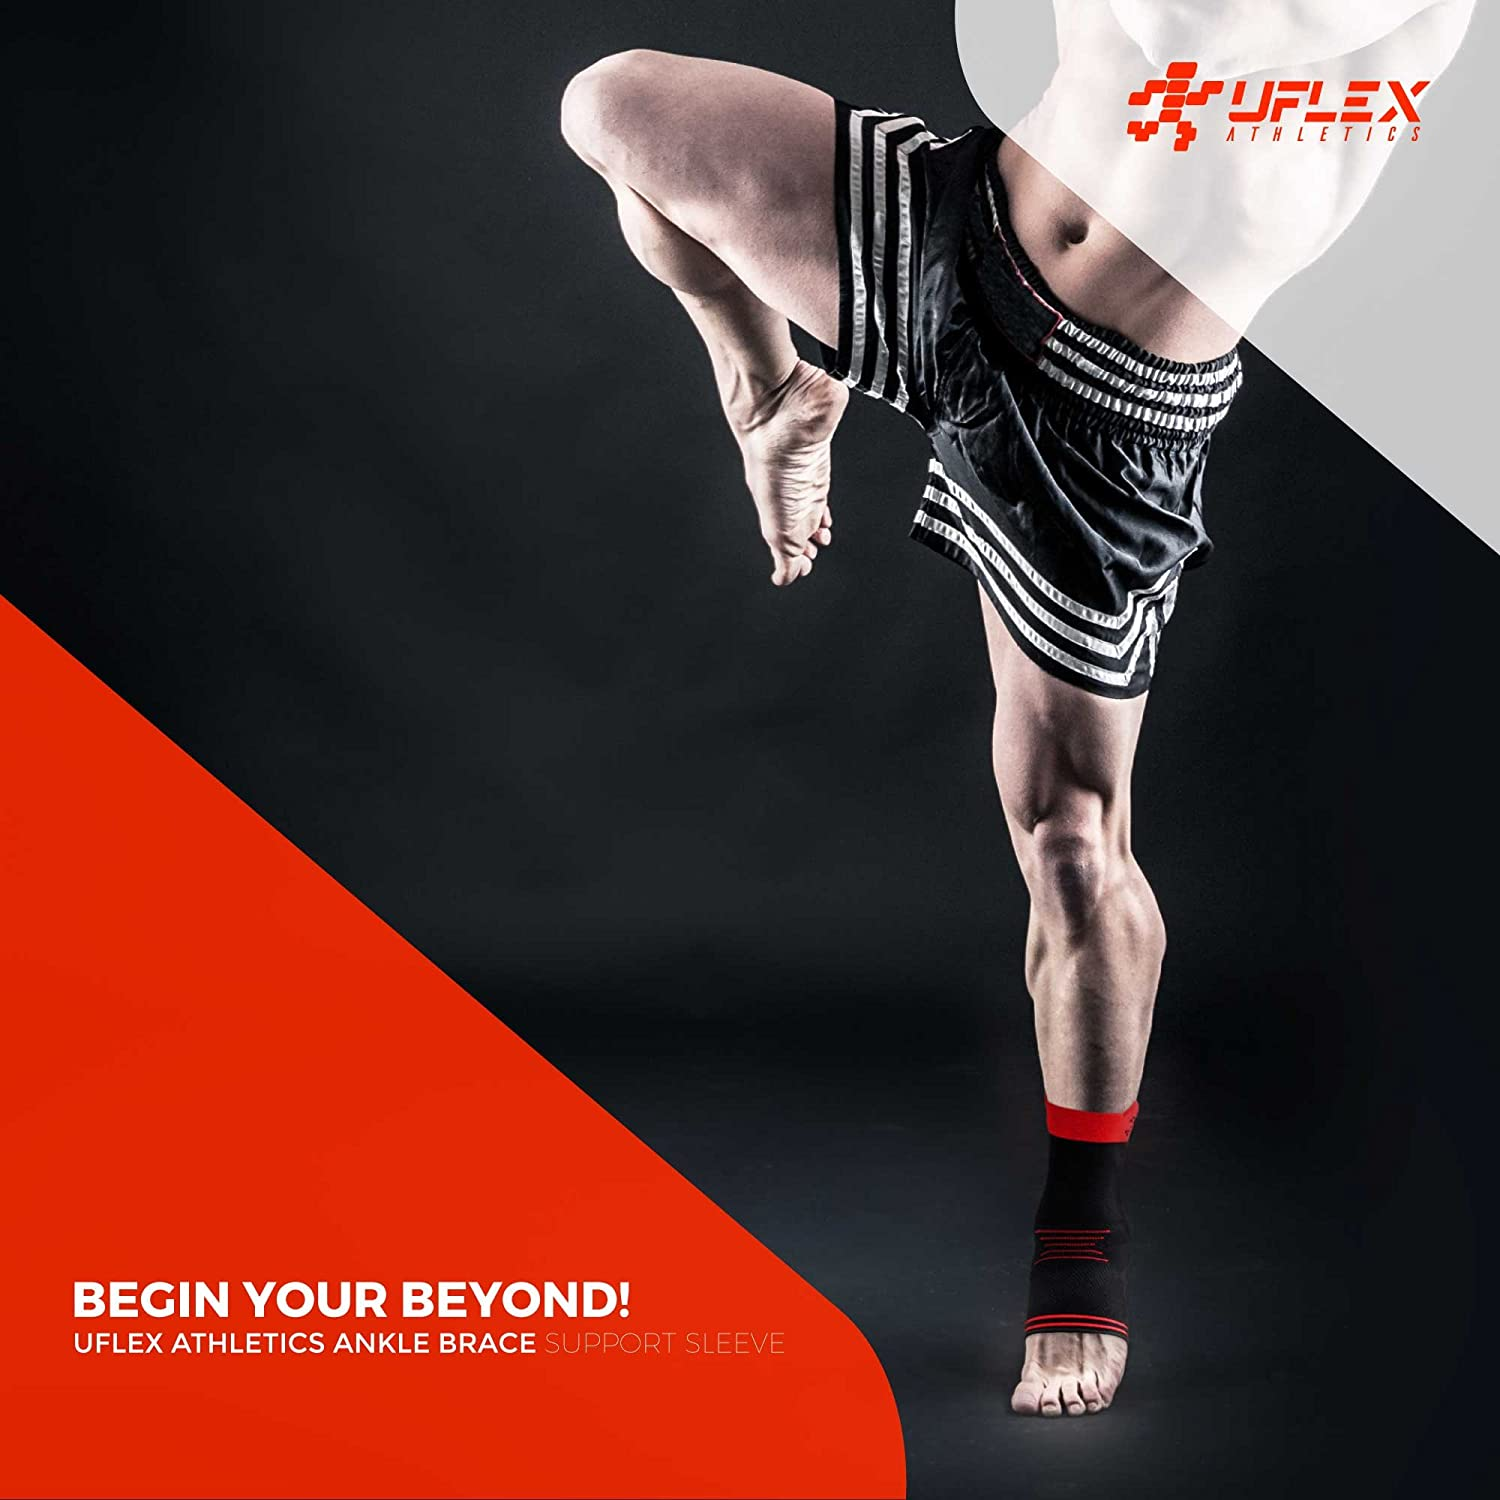 166d22a9ad Amazon.com : UFlex Athletics Ankle Brace Support Sleeve for Post Surgery  Treatment, Swelling Reduction, Pain Relief, Ankle Stabilizing and  Compression, ...